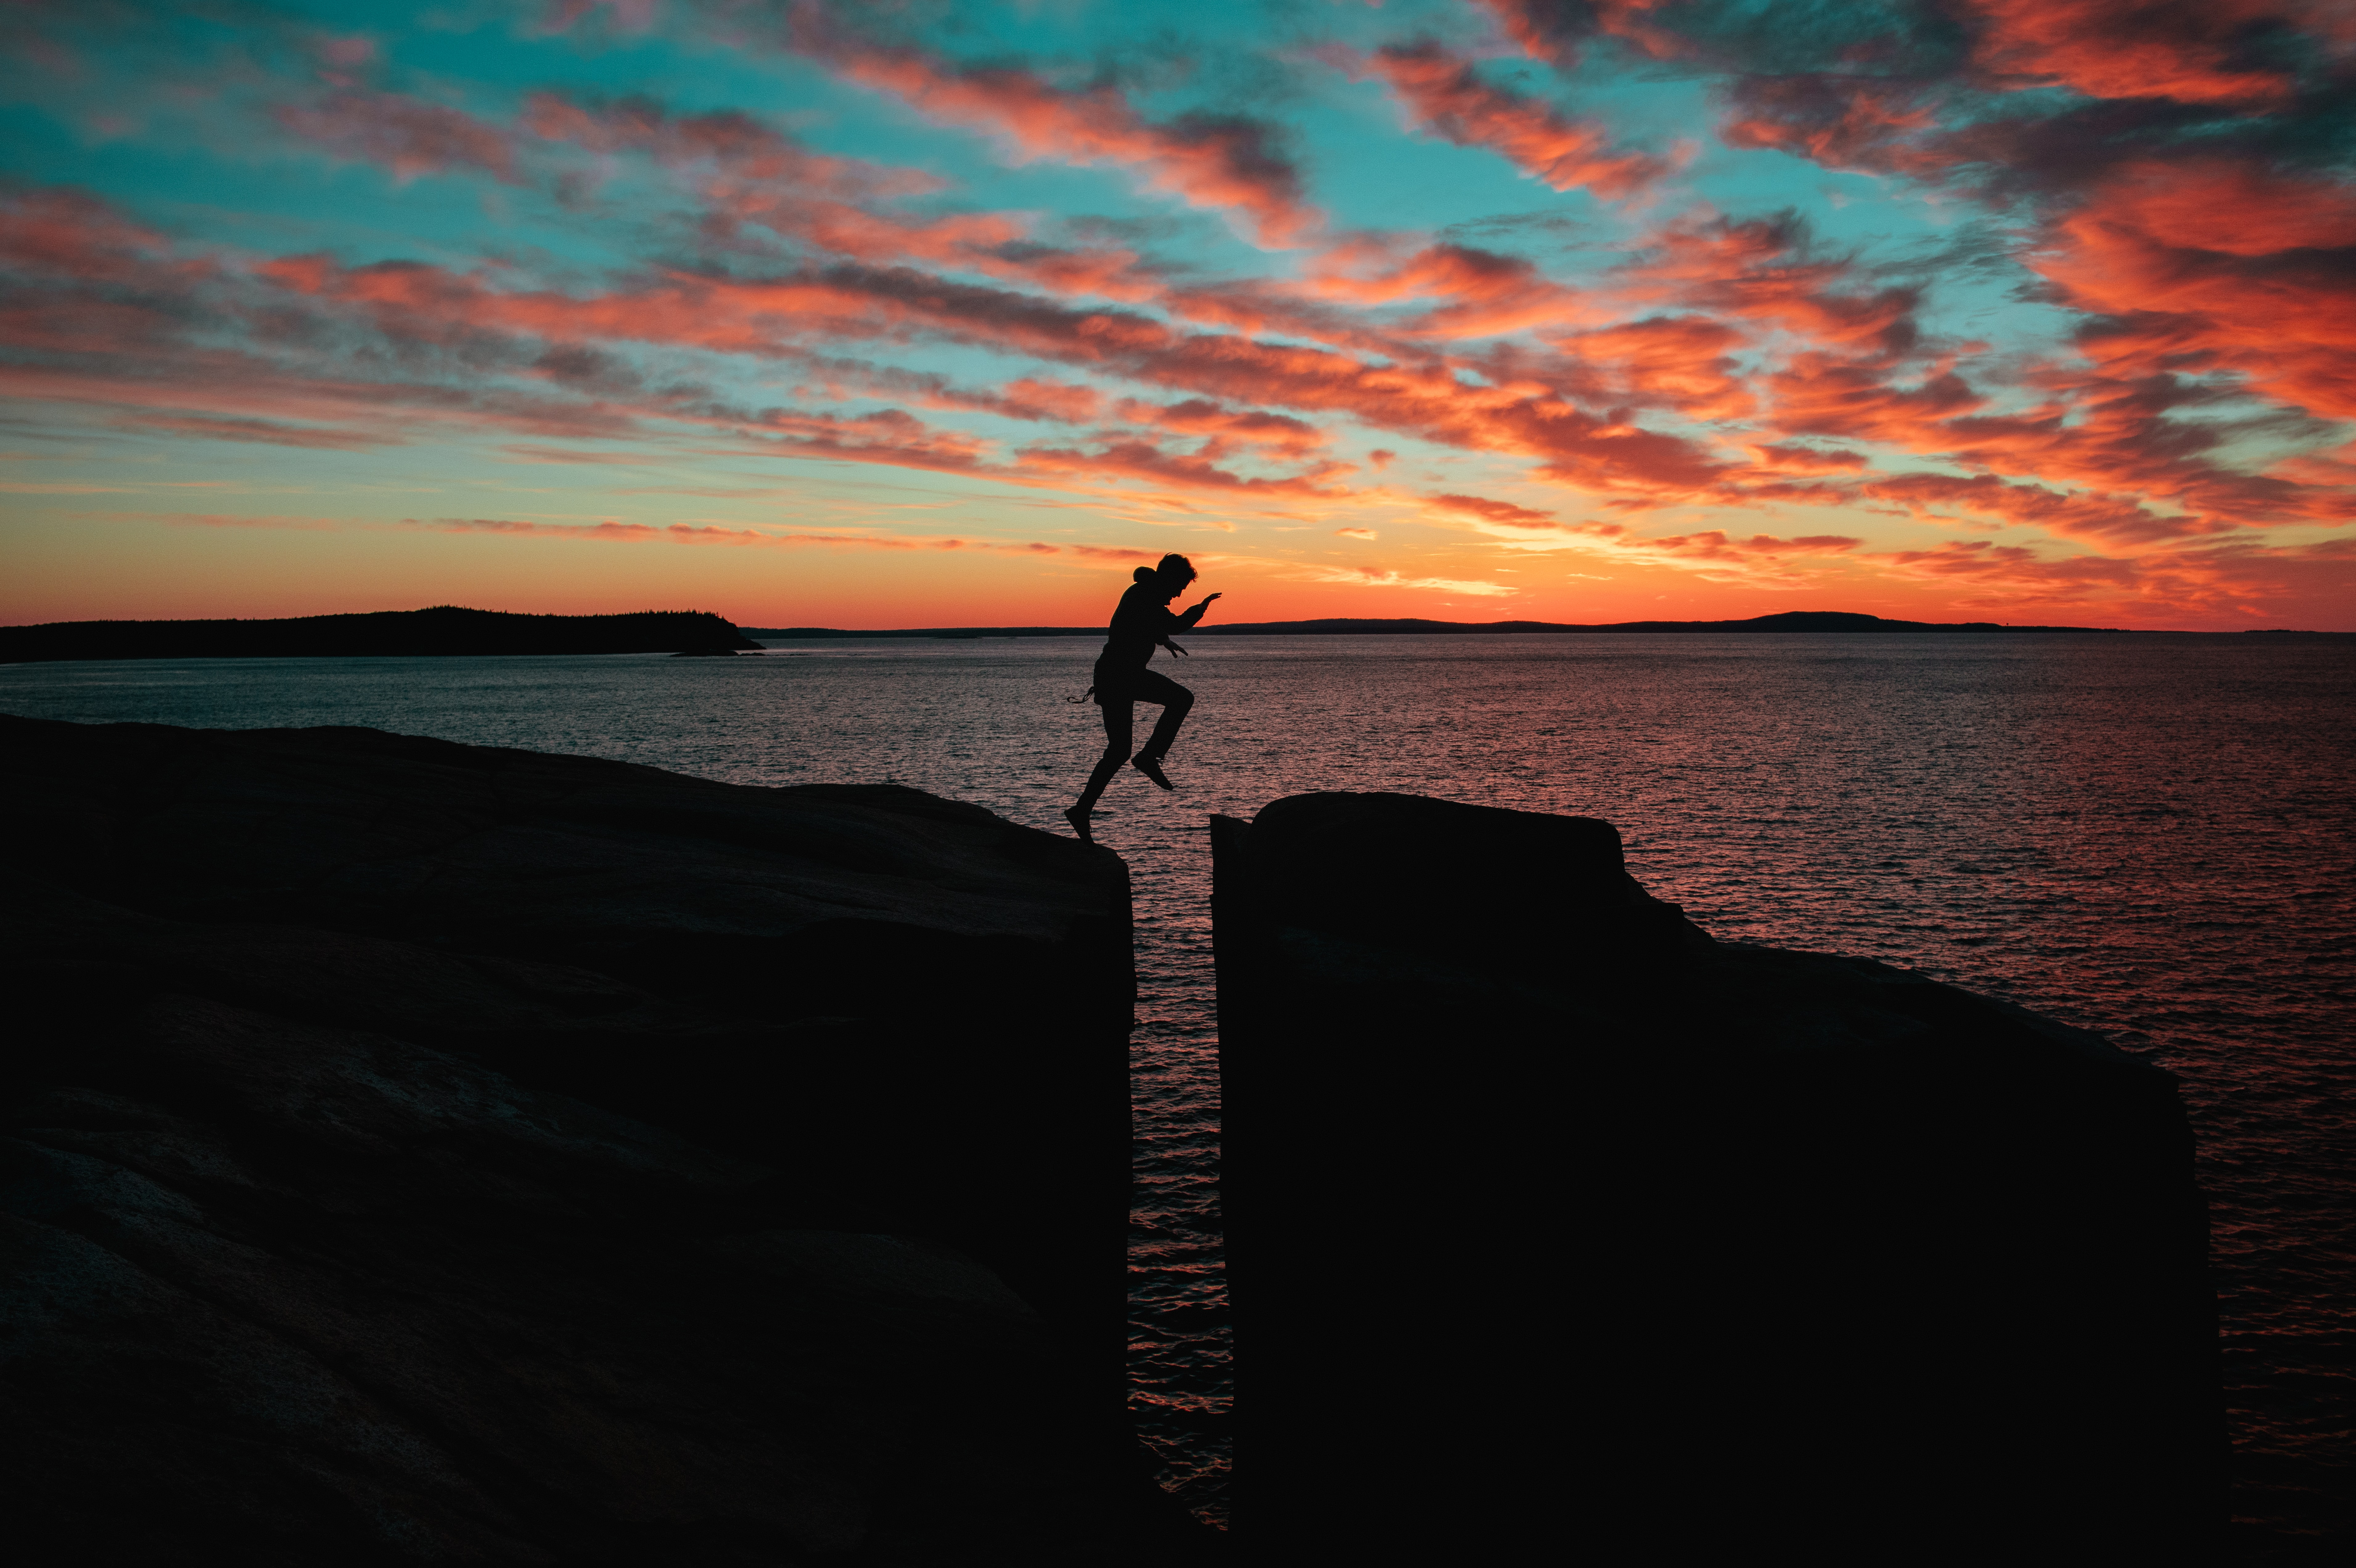 A man leaping between large rocks near the ocean